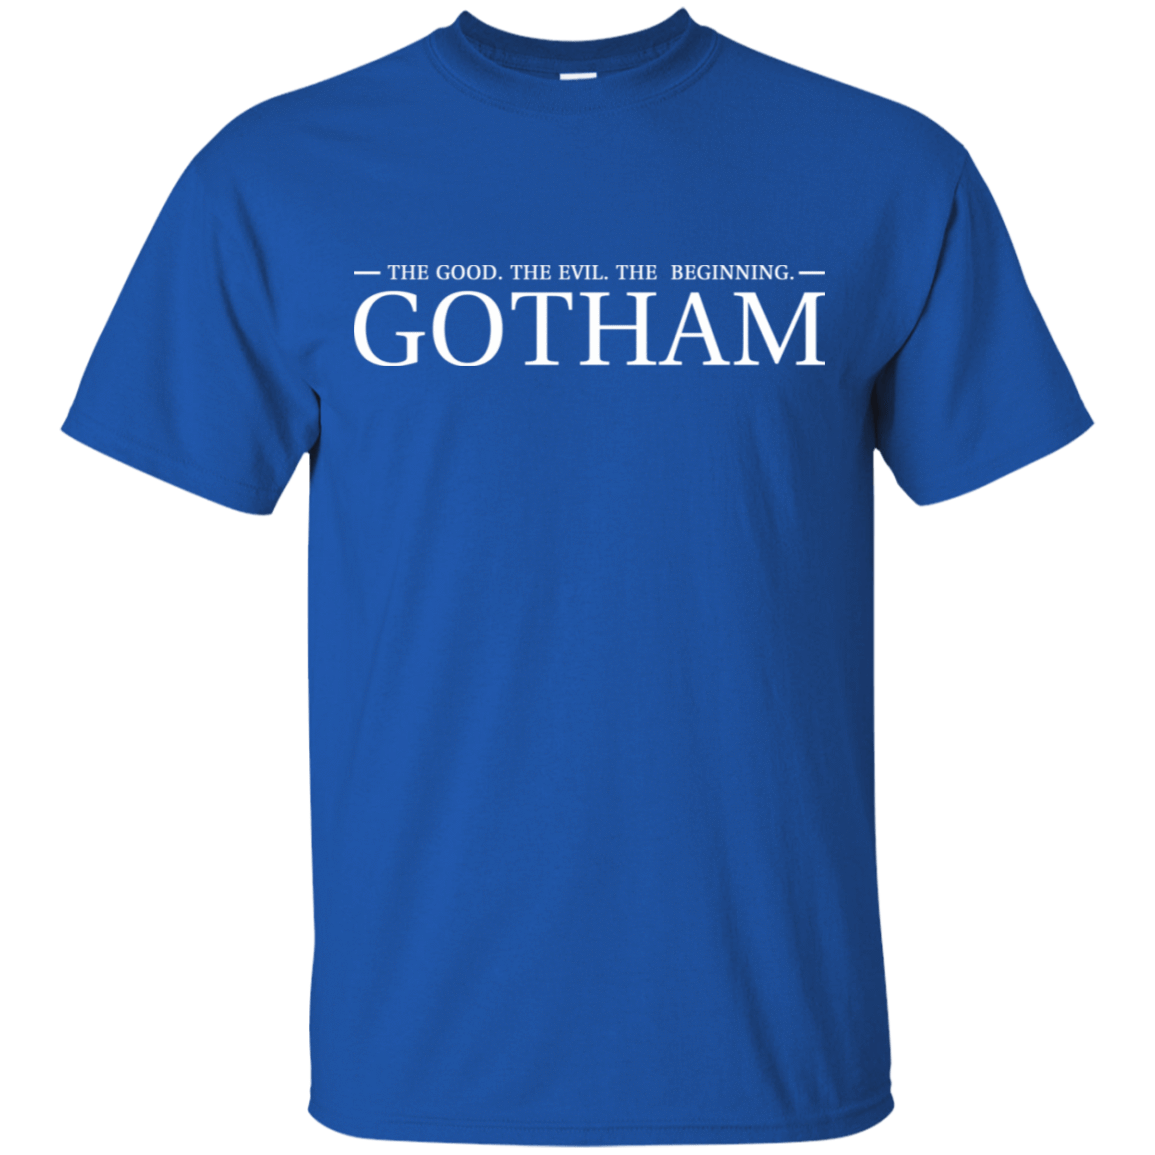 The Good. The Evil. The Beginning. Gotham 22-110-74005250-249 - Tee Ript